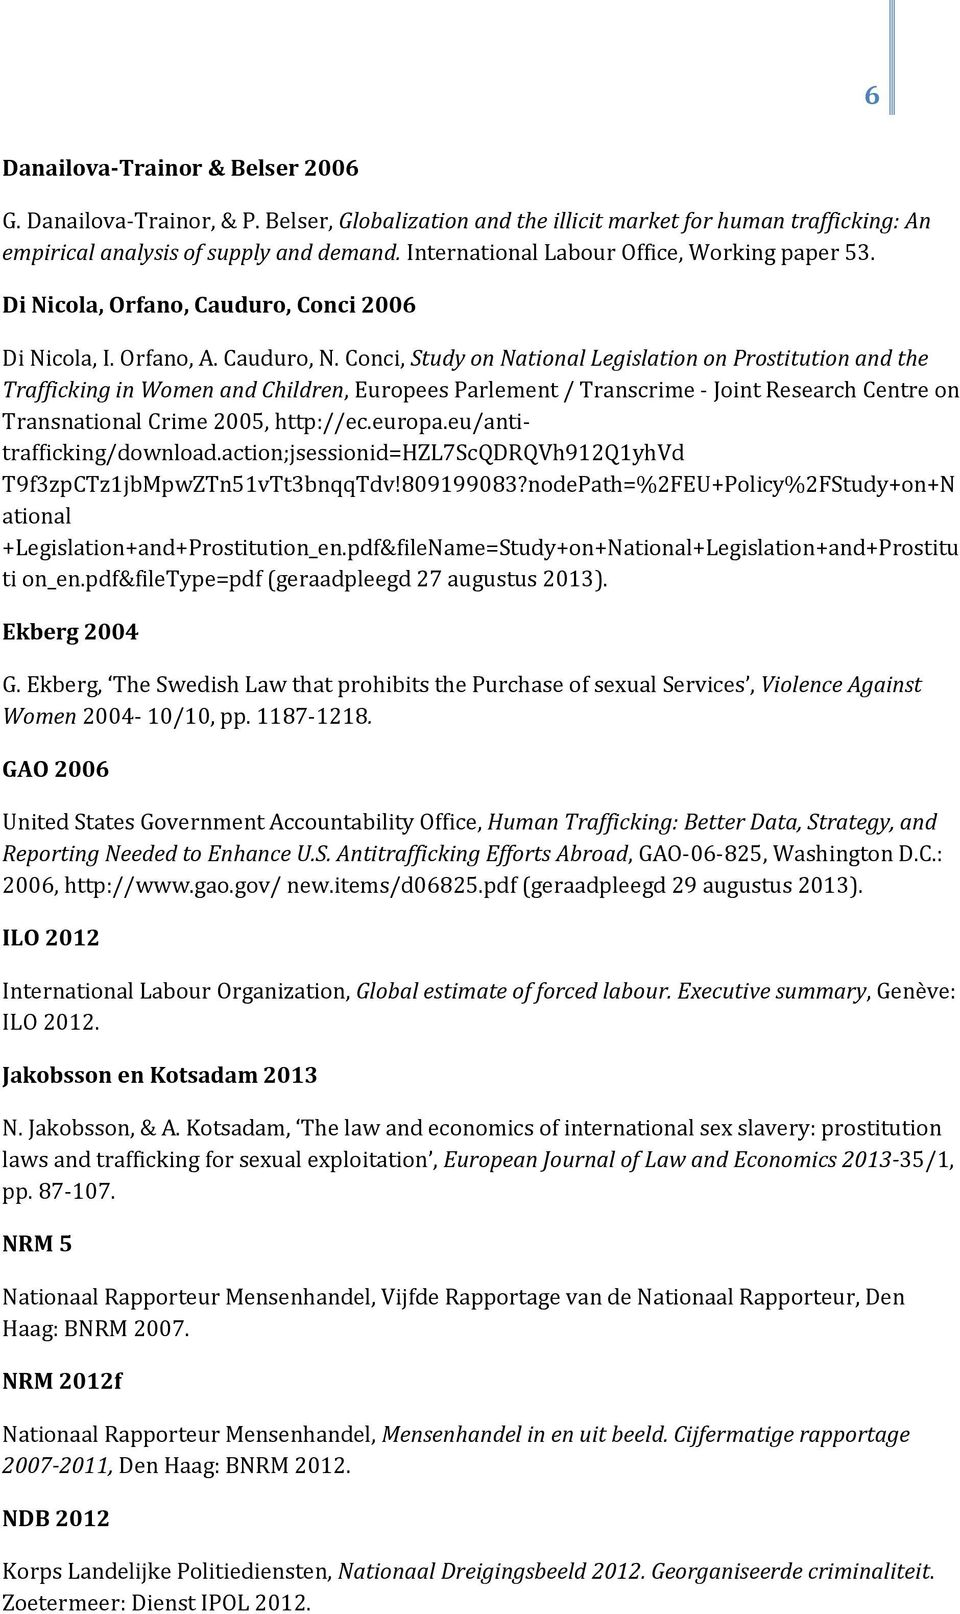 Conci, Study on National Legislation on Prostitution and the Trafficking in Women and Children, Europees Parlement / Transcrime - Joint Research Centre on Transnational Crime 2005, http://ec.europa.